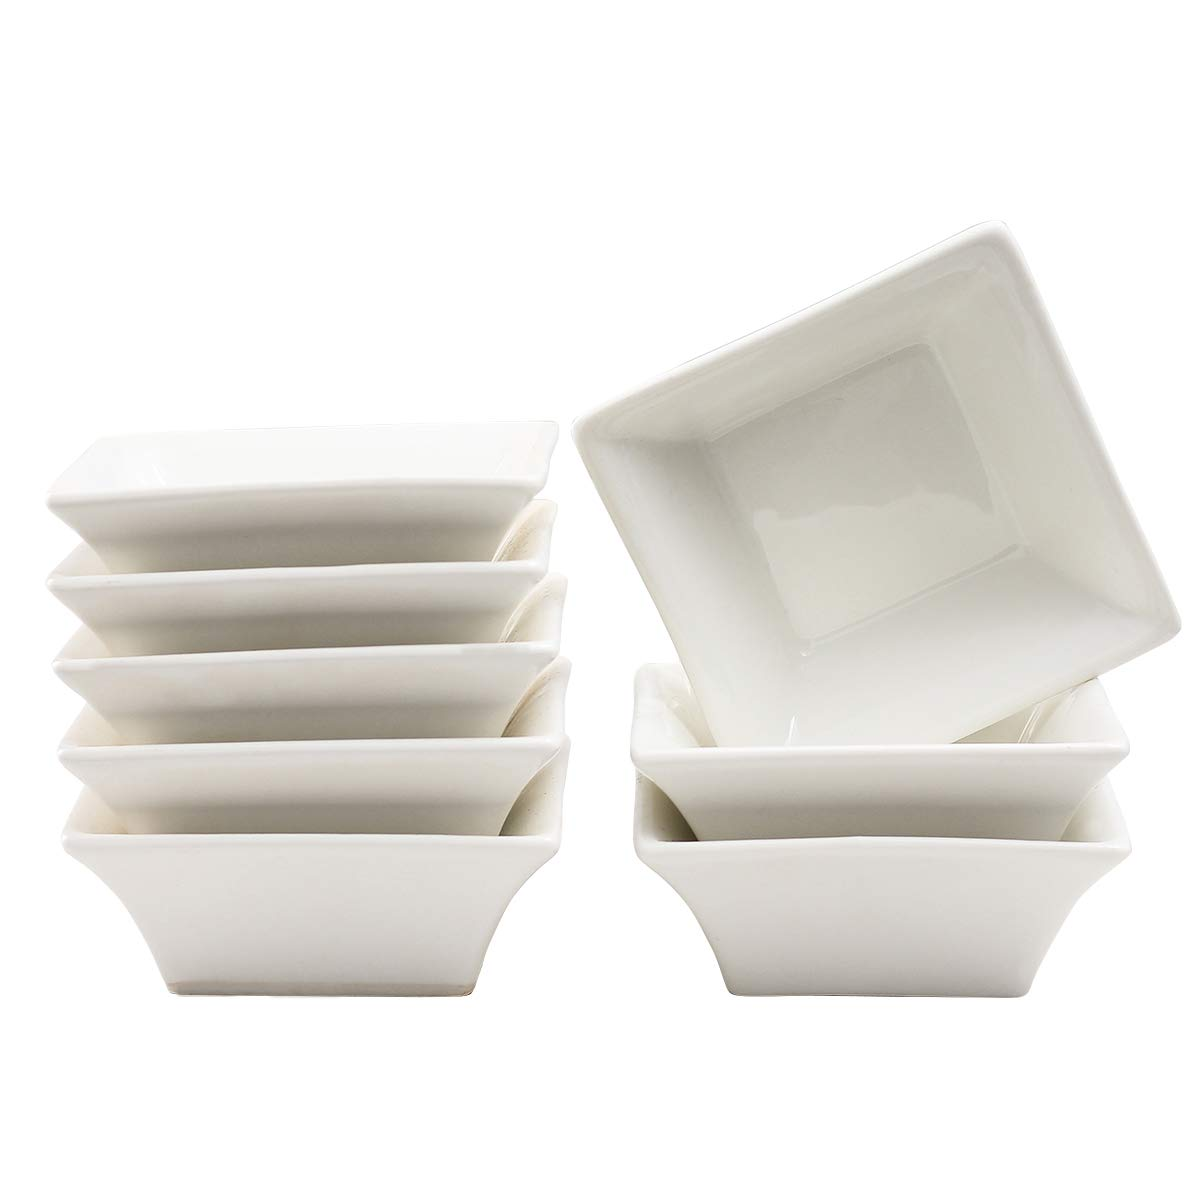 5oz Ramekins White Small Square Dishes,Dipping Bowls Stackable Porcelain Ramekins Set of 8 XUFENG by XUFENG